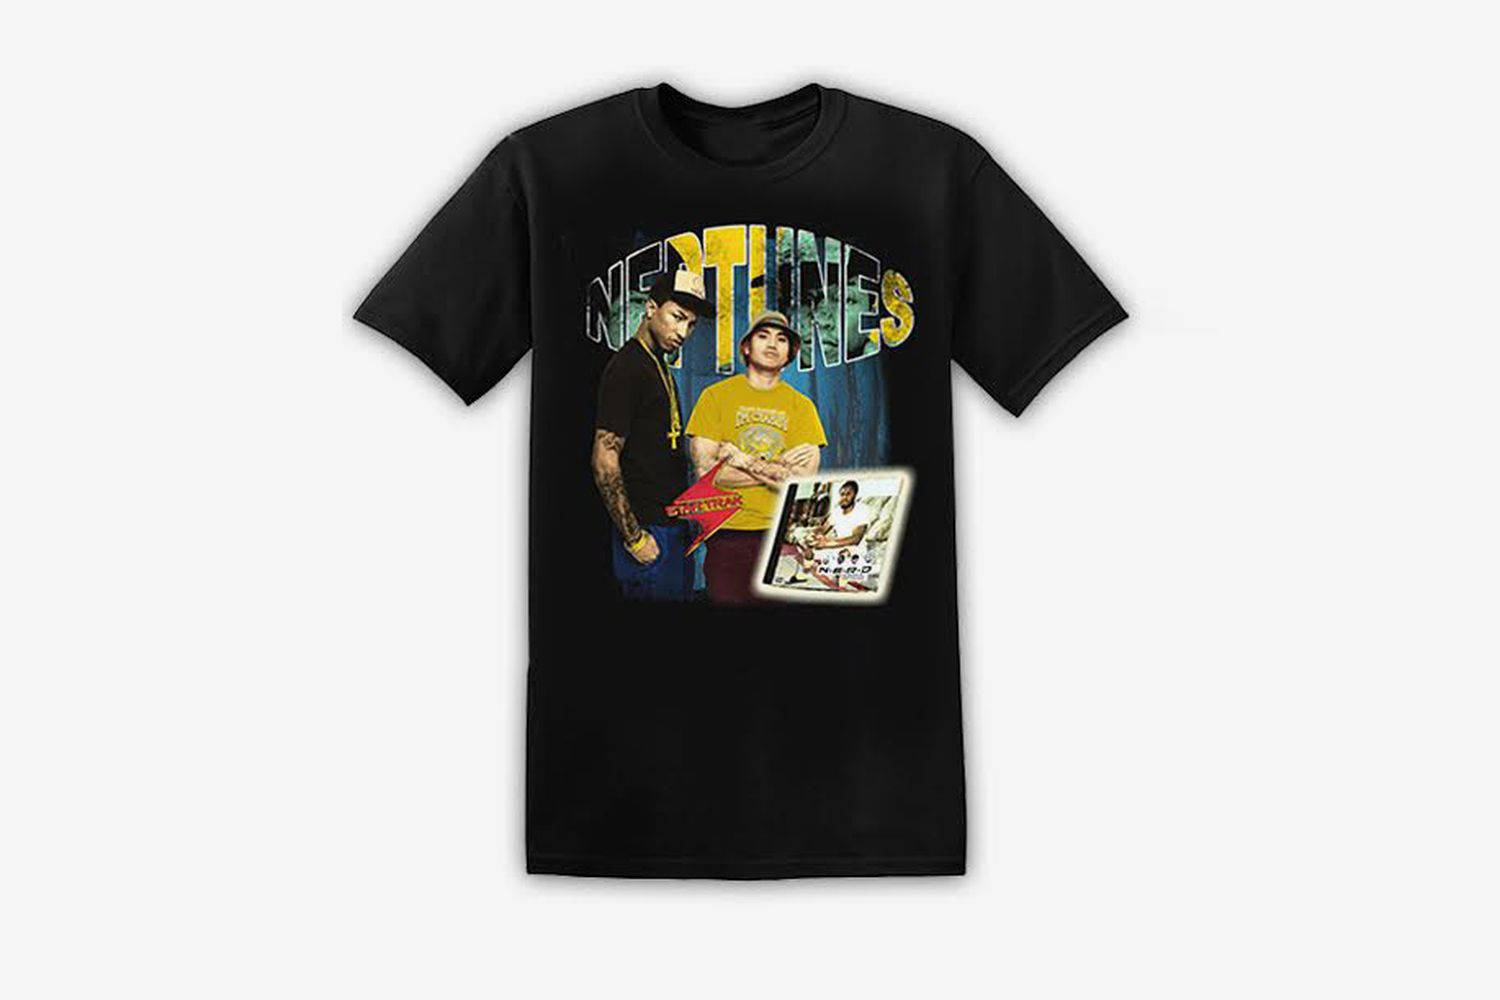 The Neptunes T-Shirt